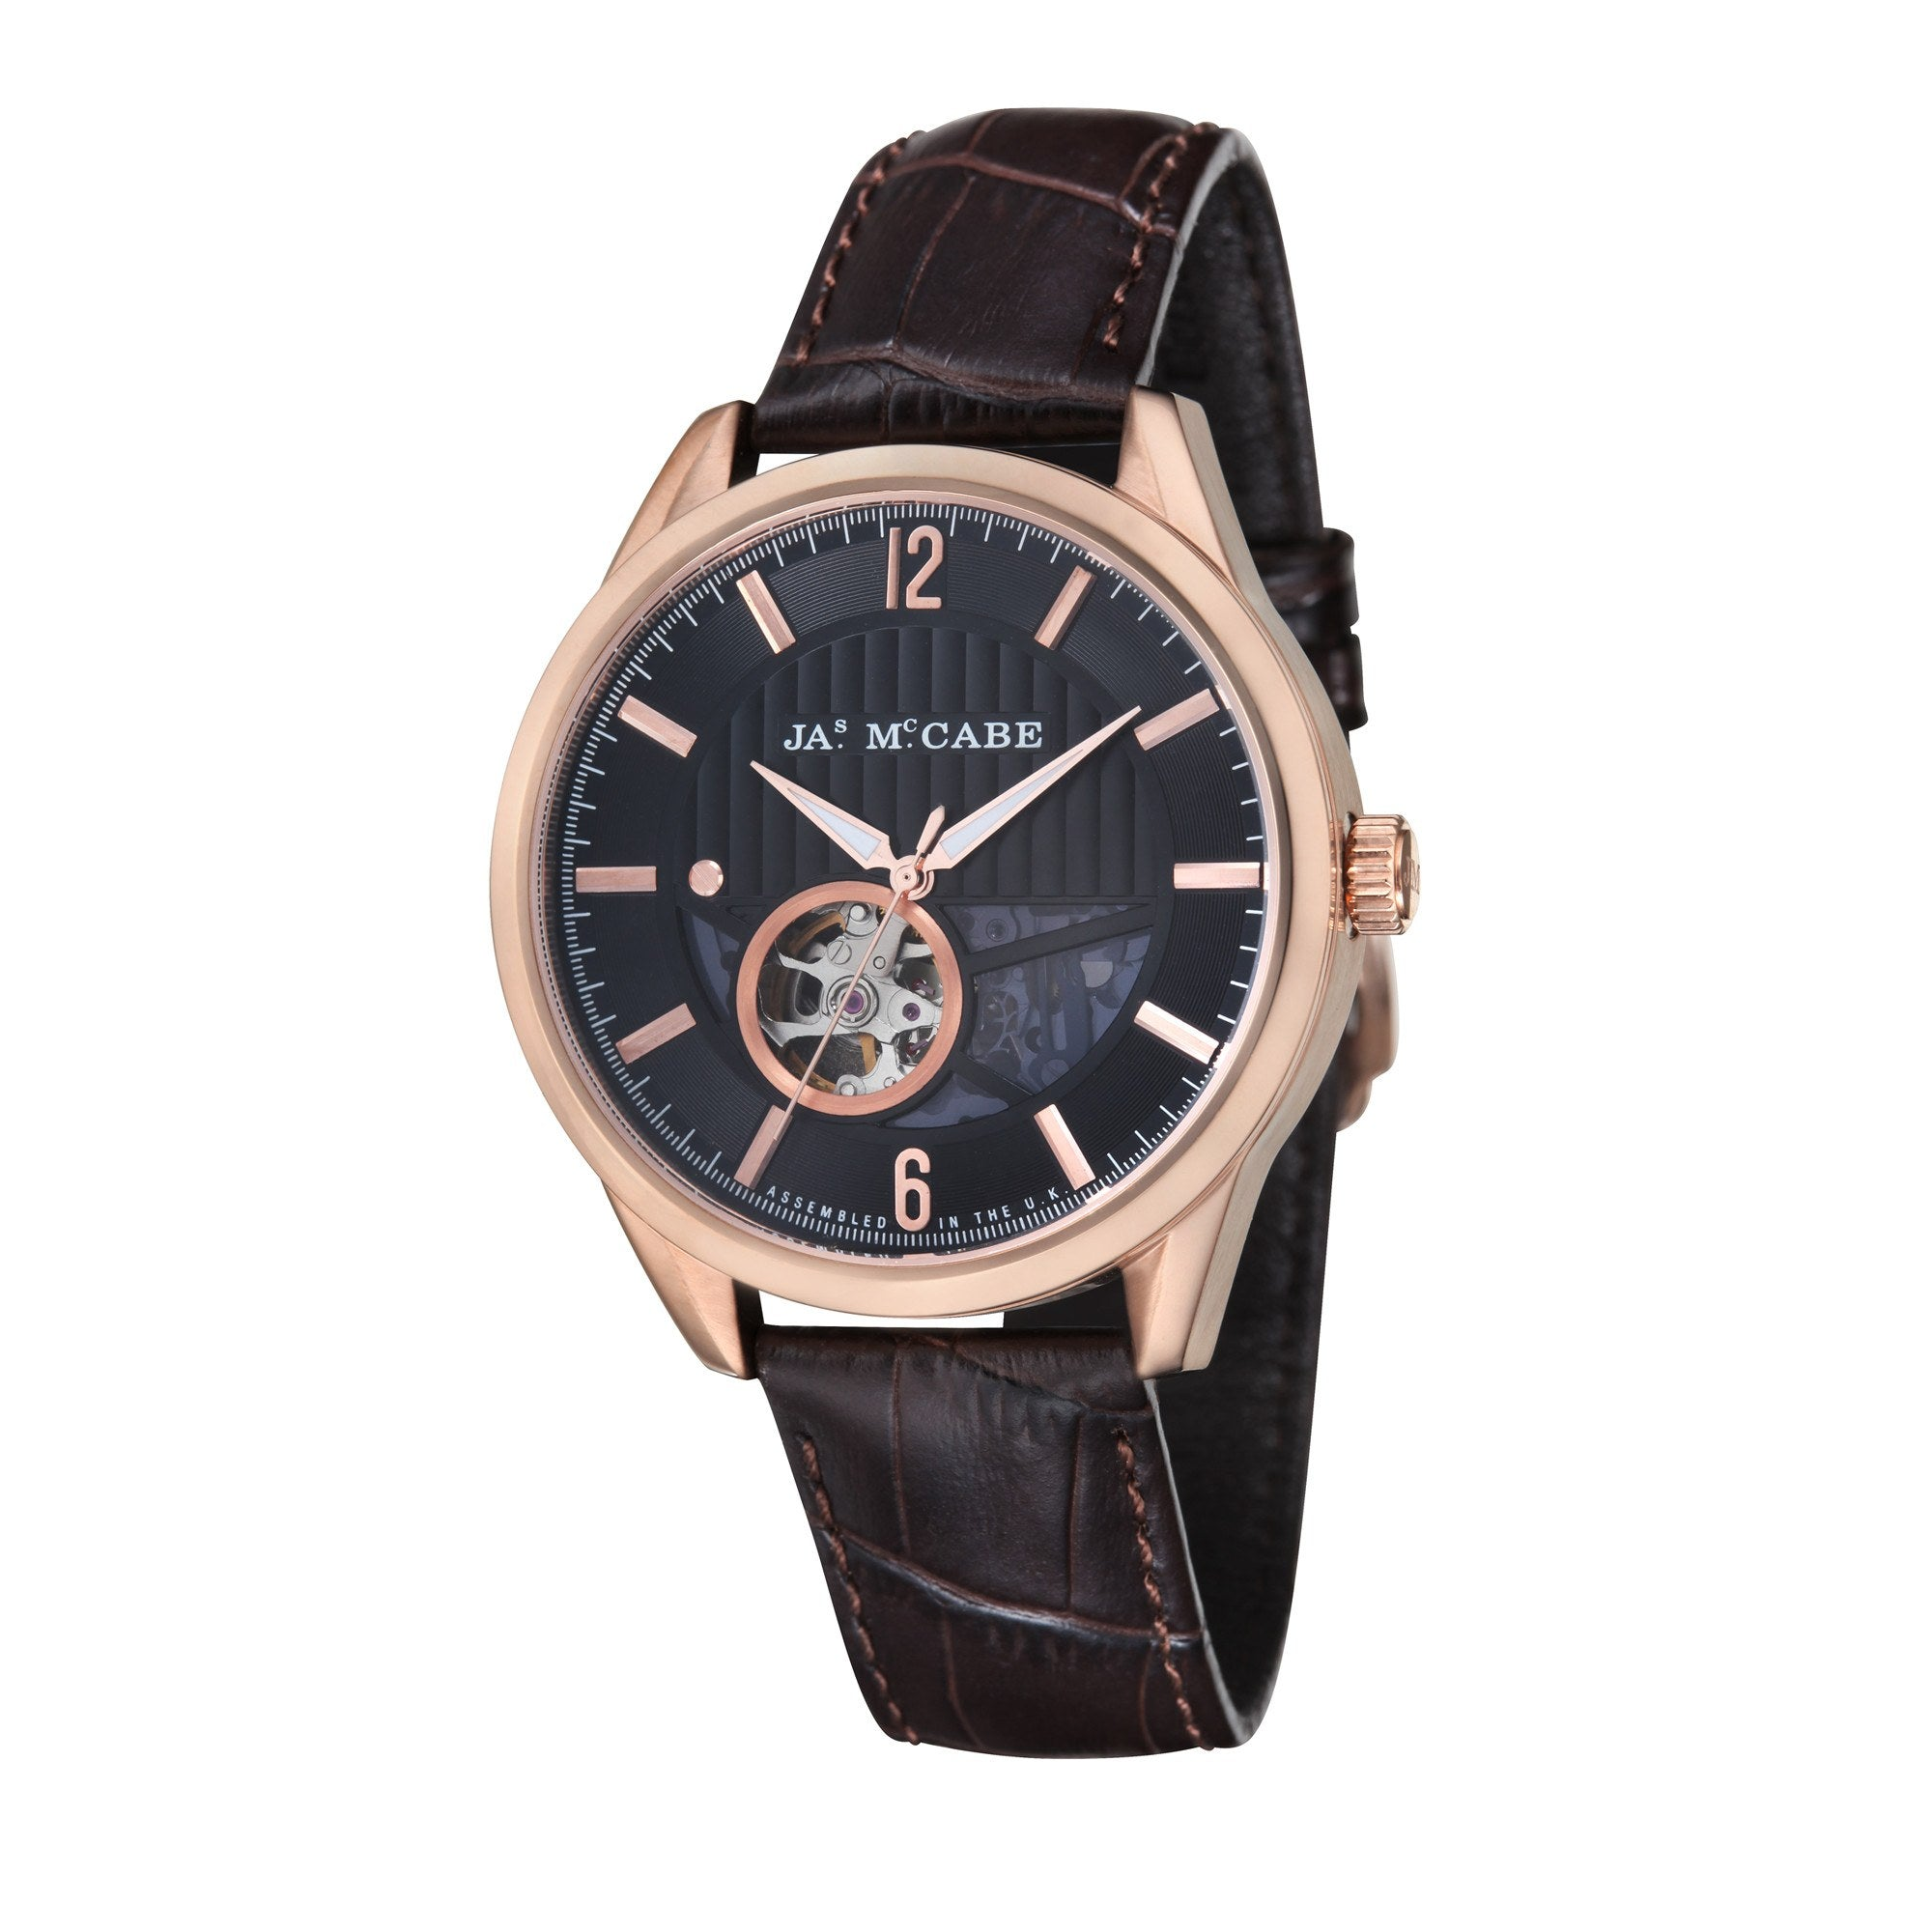 James Mccabe Men's JM-1020-04 Belfast Rose Gold Automatic Watch with Dark Brown Leather Strap